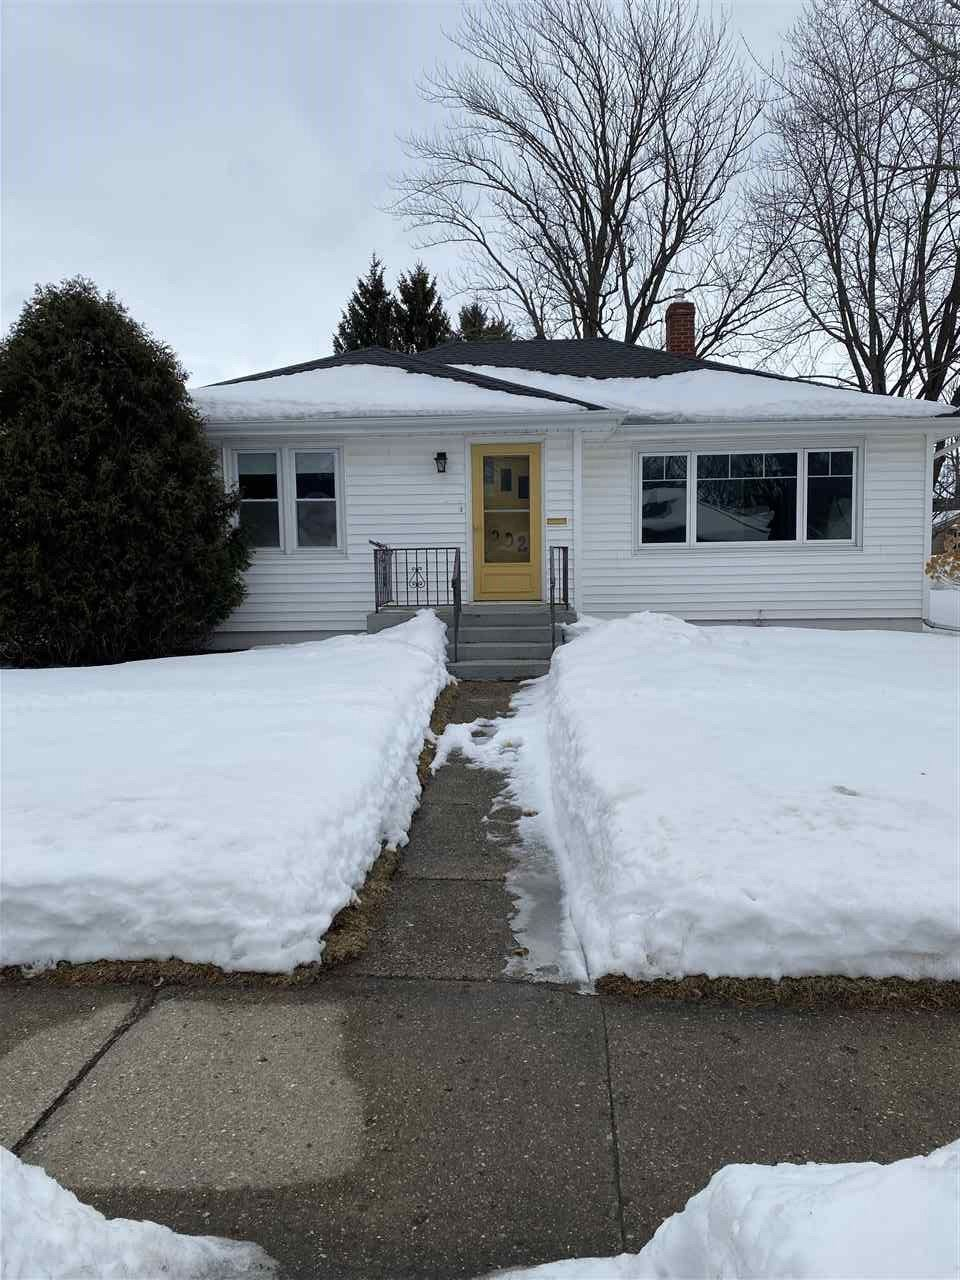 602 N Ringold St, Janesville, WI 53545 - MLS#: 1903029